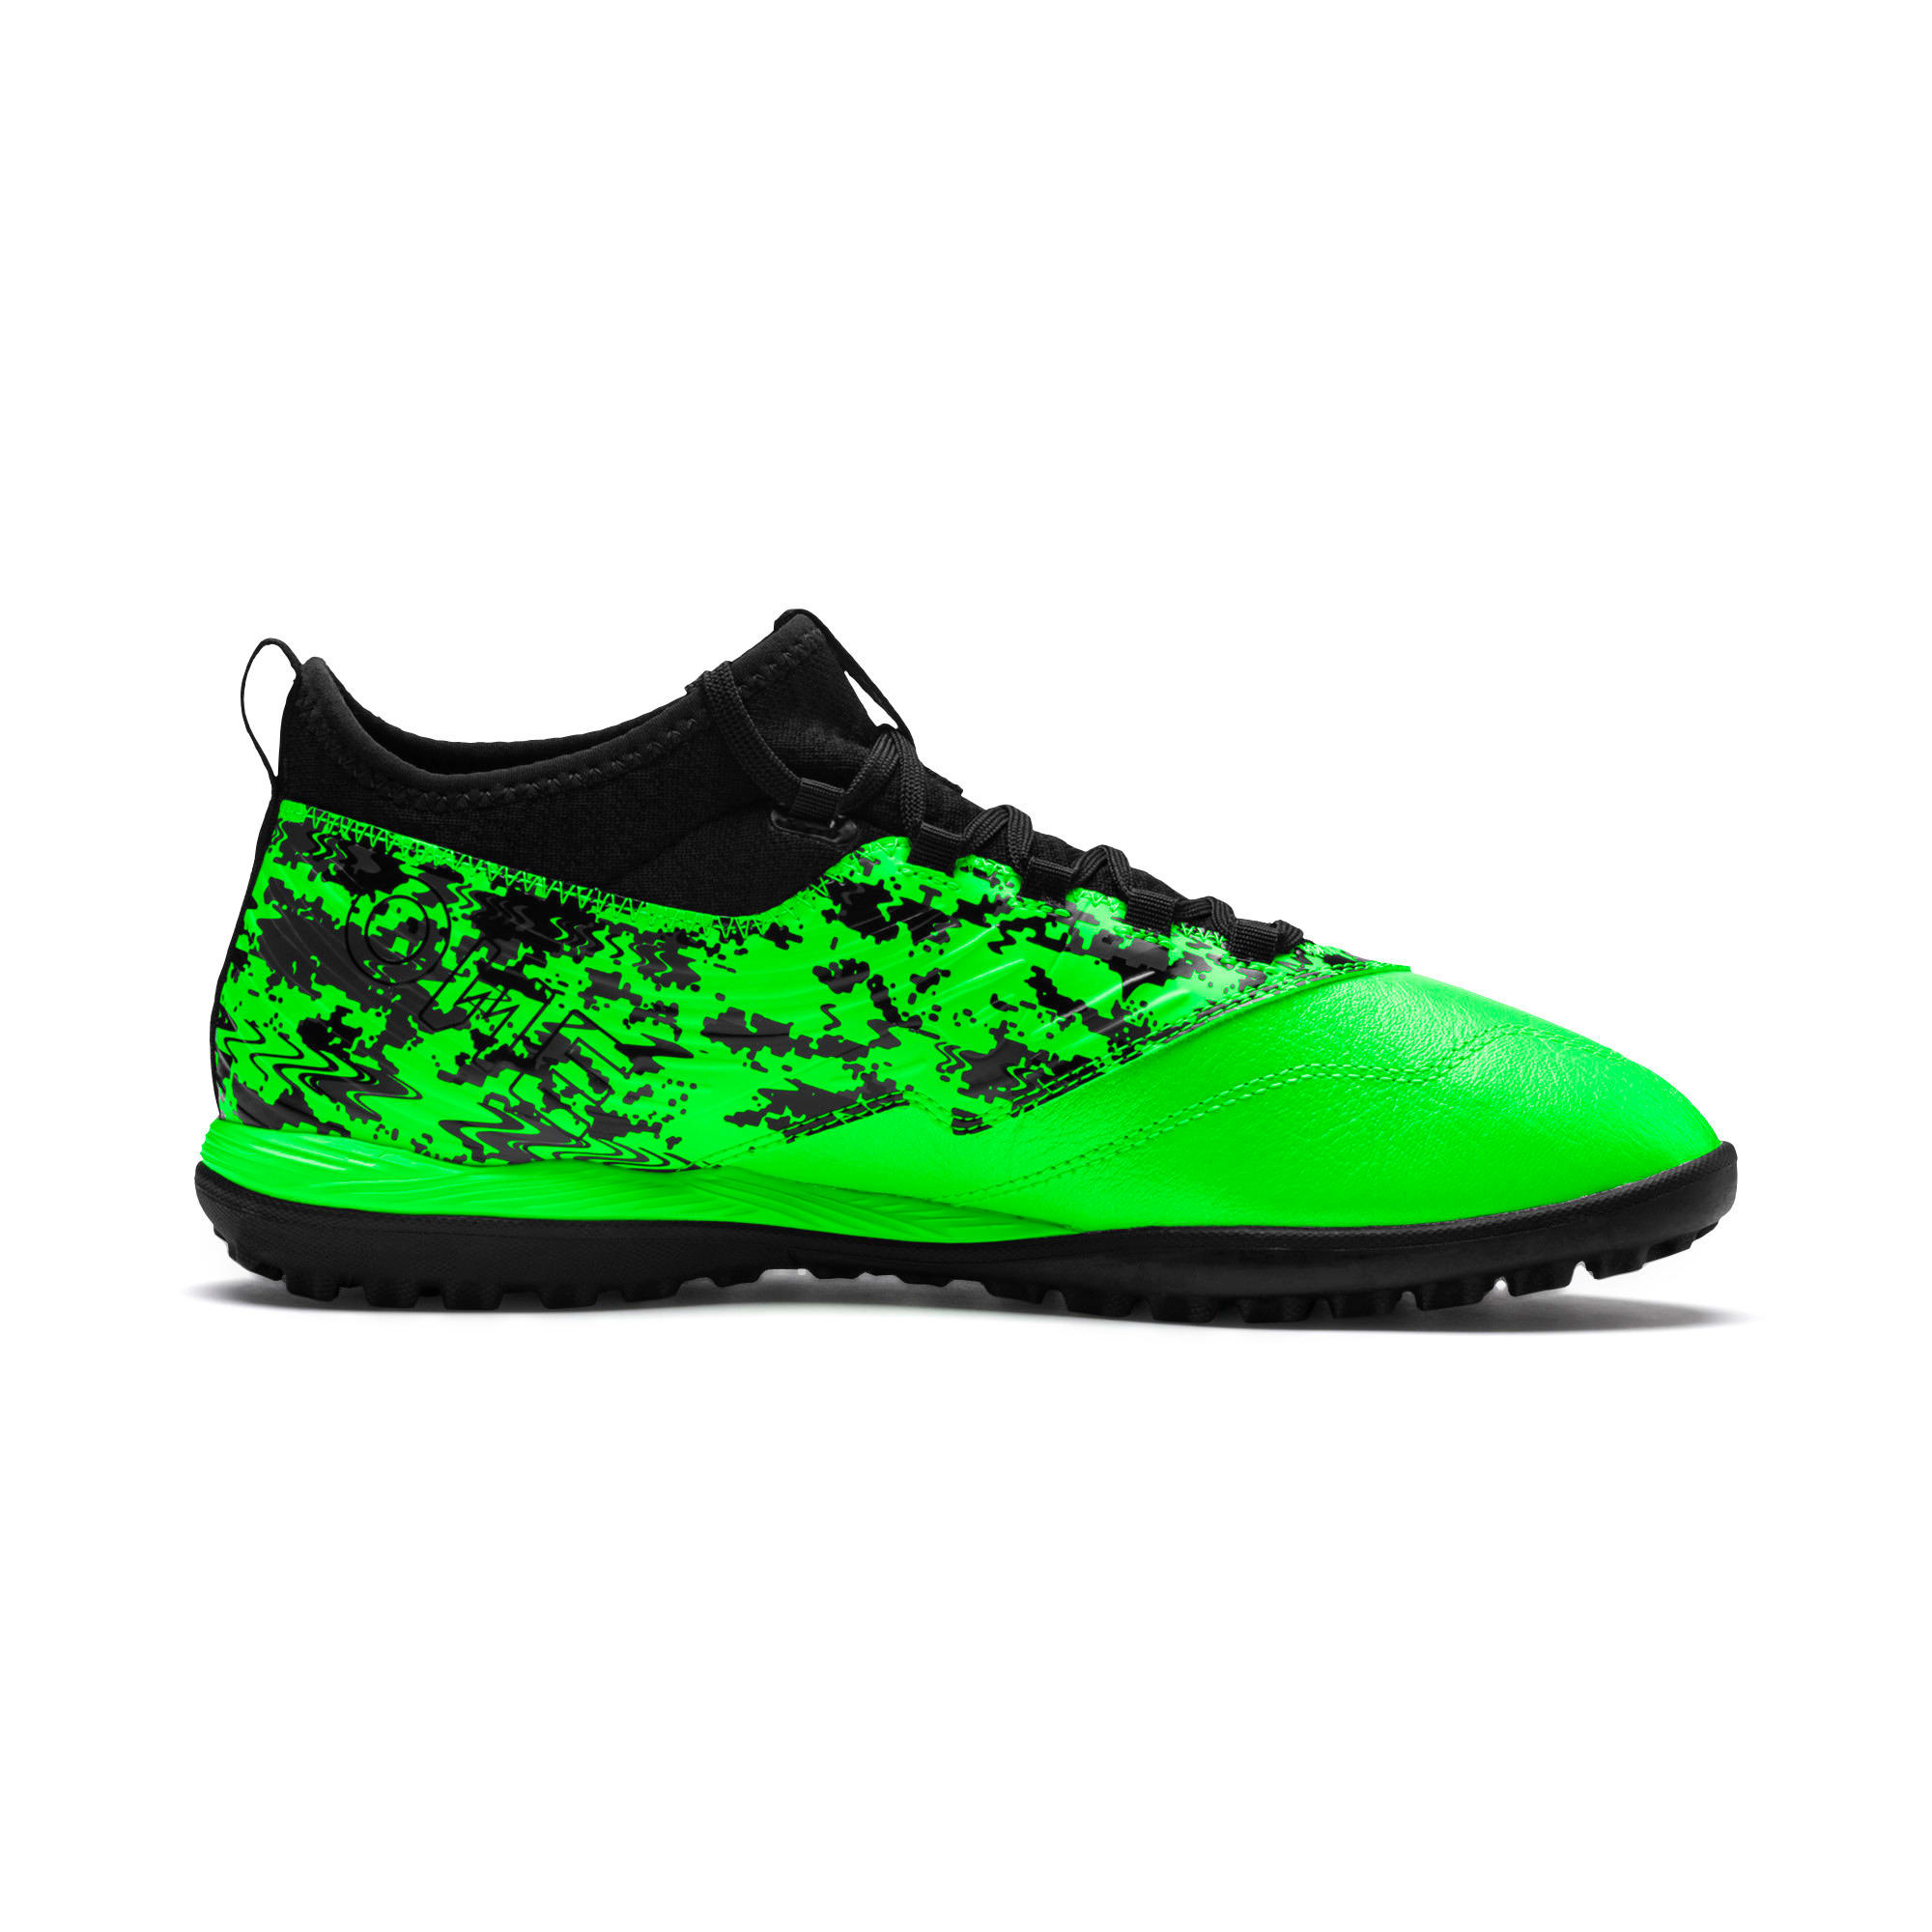 PUMA ONE 19.3 TT Men's Soccer Shoes, Green Gecko-Black-Gray, large